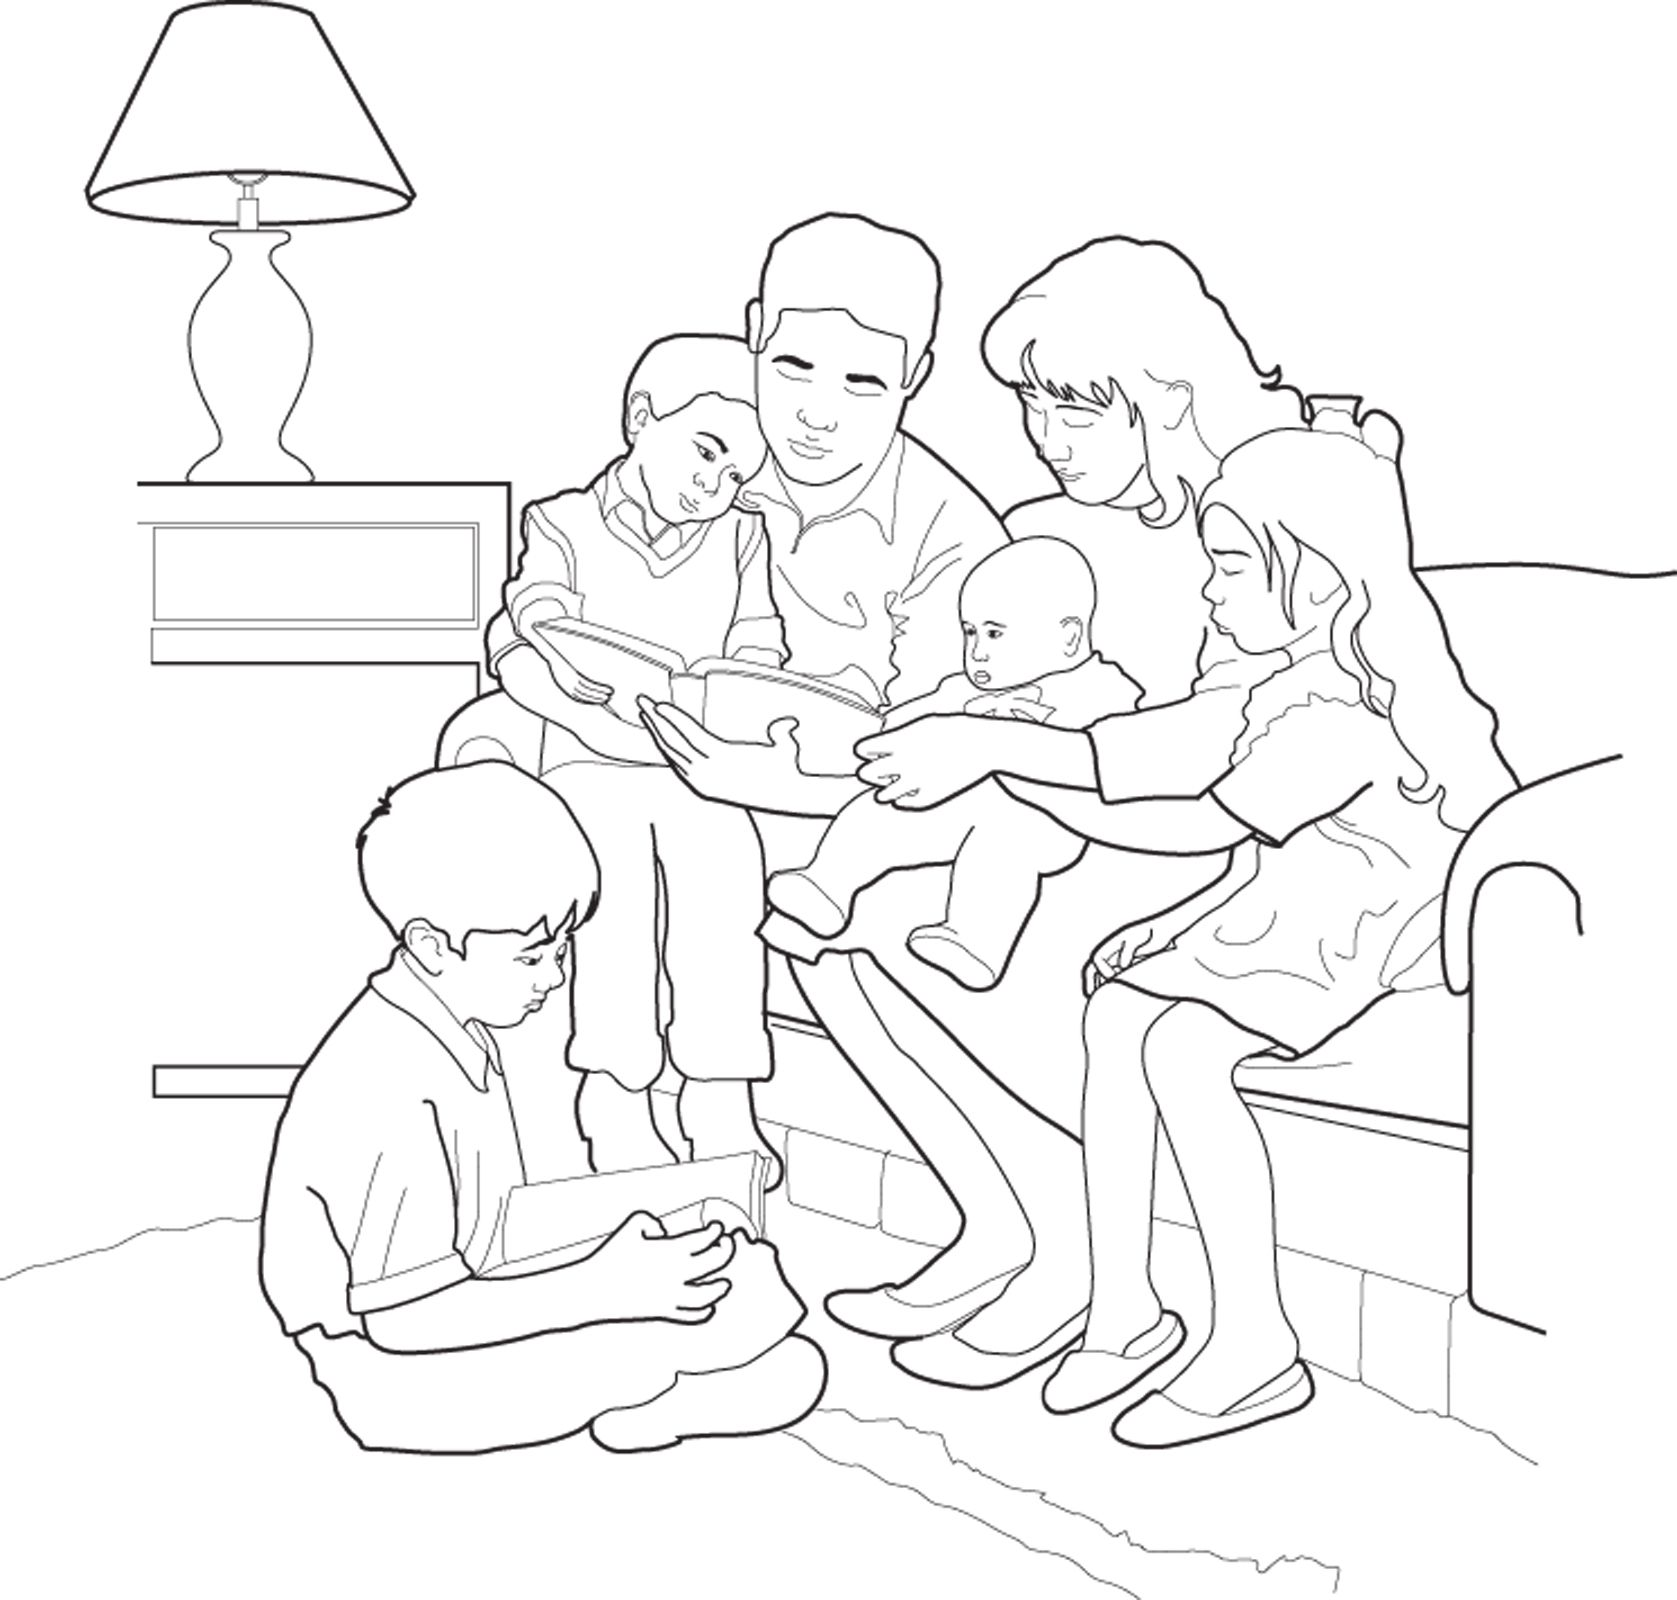 A Family Reading Together Children S Coloring Page From Lds Org